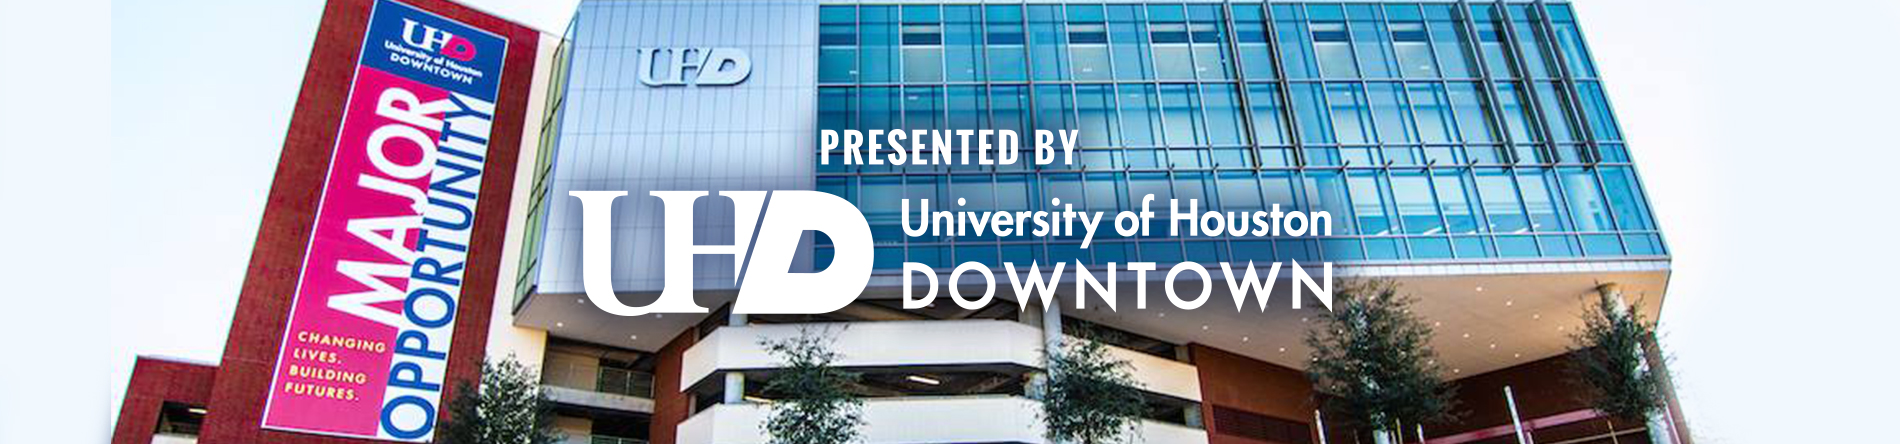 Presented by University of Houston Downtown